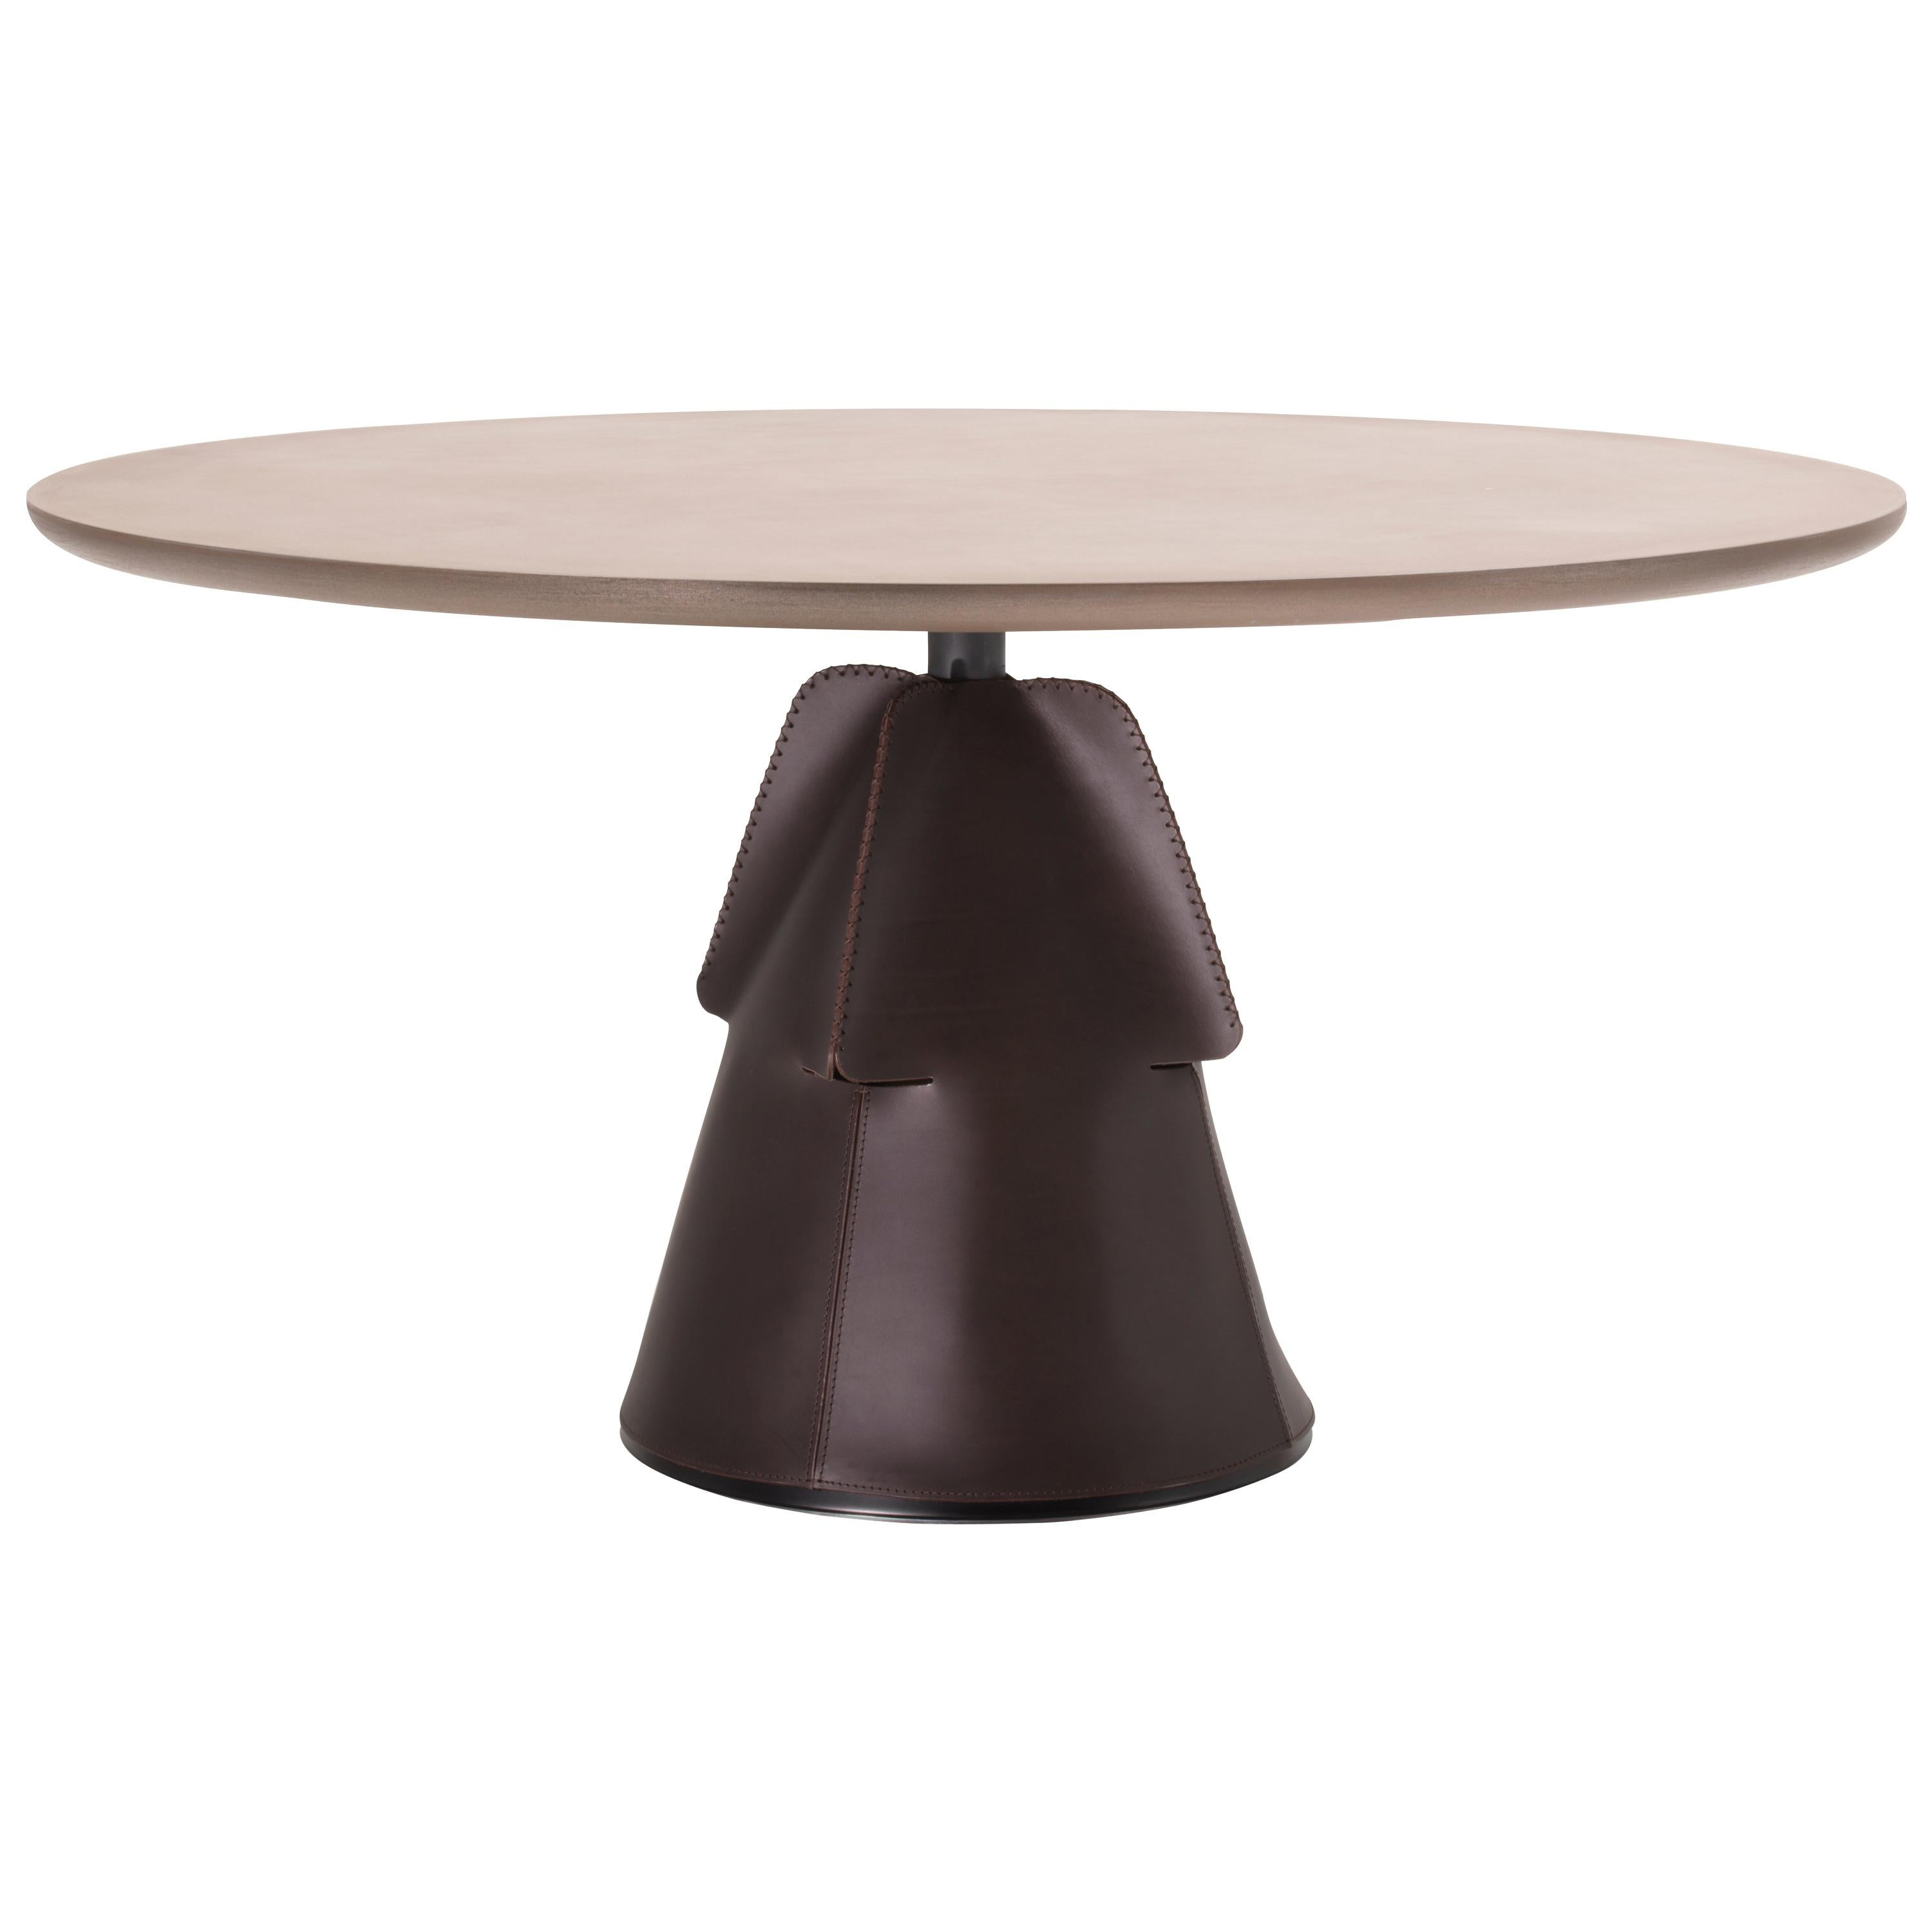 DS-615 Customizable Hand-Stitched Leather and Brass Coffee Table by De Sede